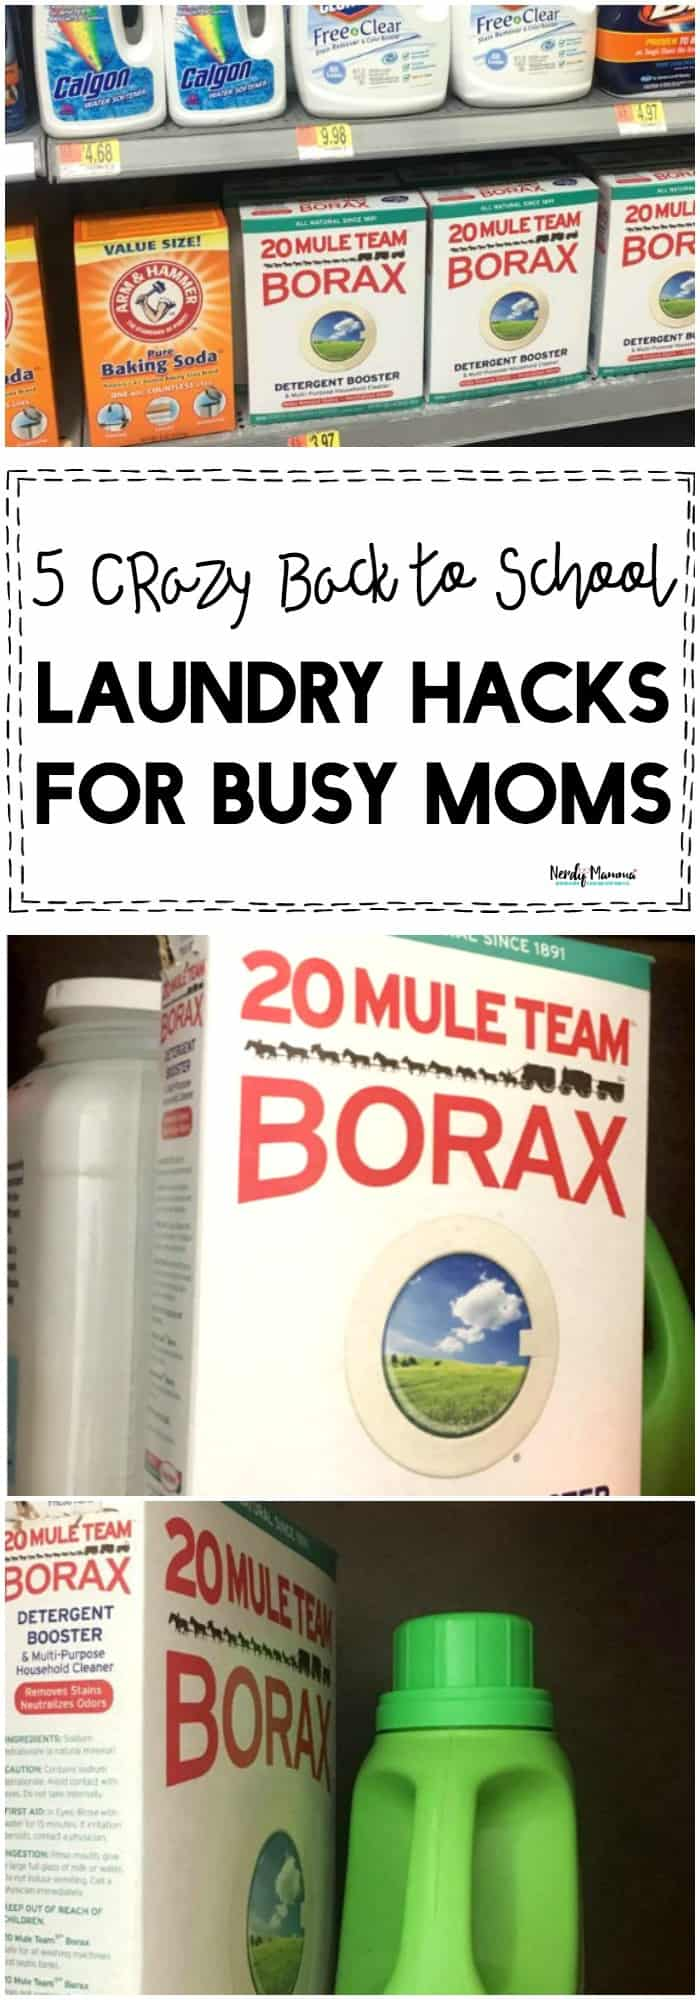 OMG You've GOT to check out these 5 crazy back to school laundry hacks for busy moms!